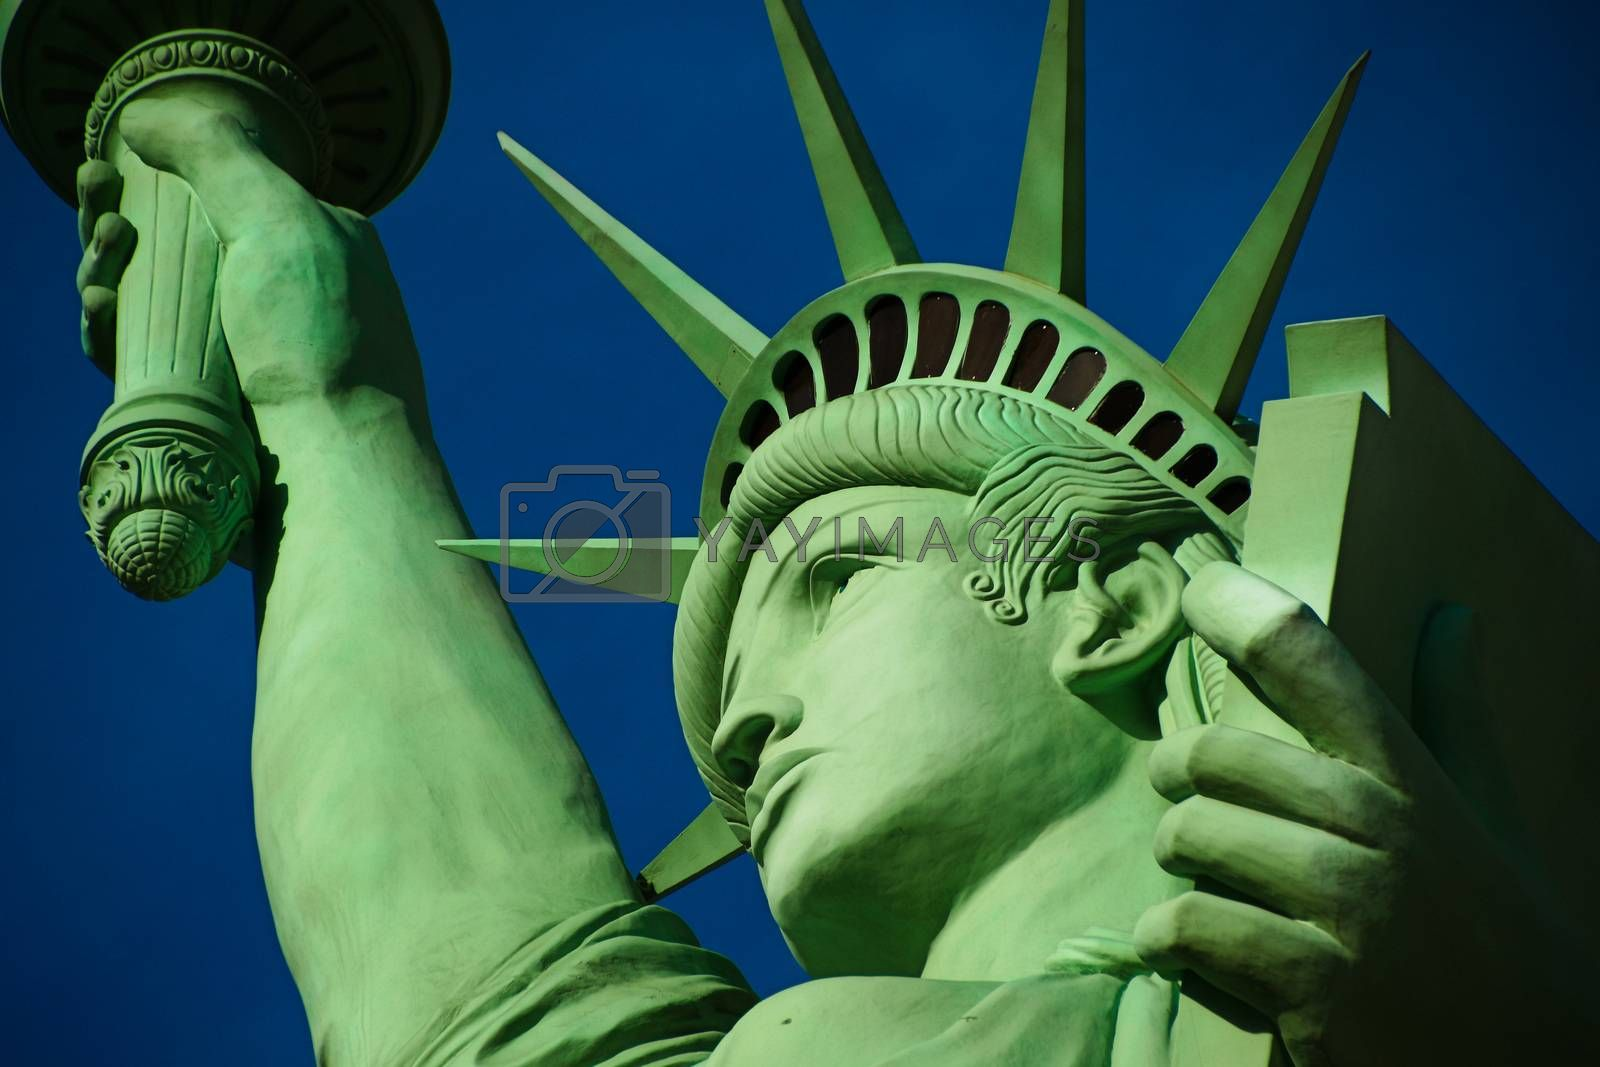 The Statue of Liberty is a colossal copper statue designed by Auguste Bartholdi a French sculptor was built by Gustave Eiffel.Dedicated on Oct 28, 1886.One of most famous icons of the 4th of July USA.